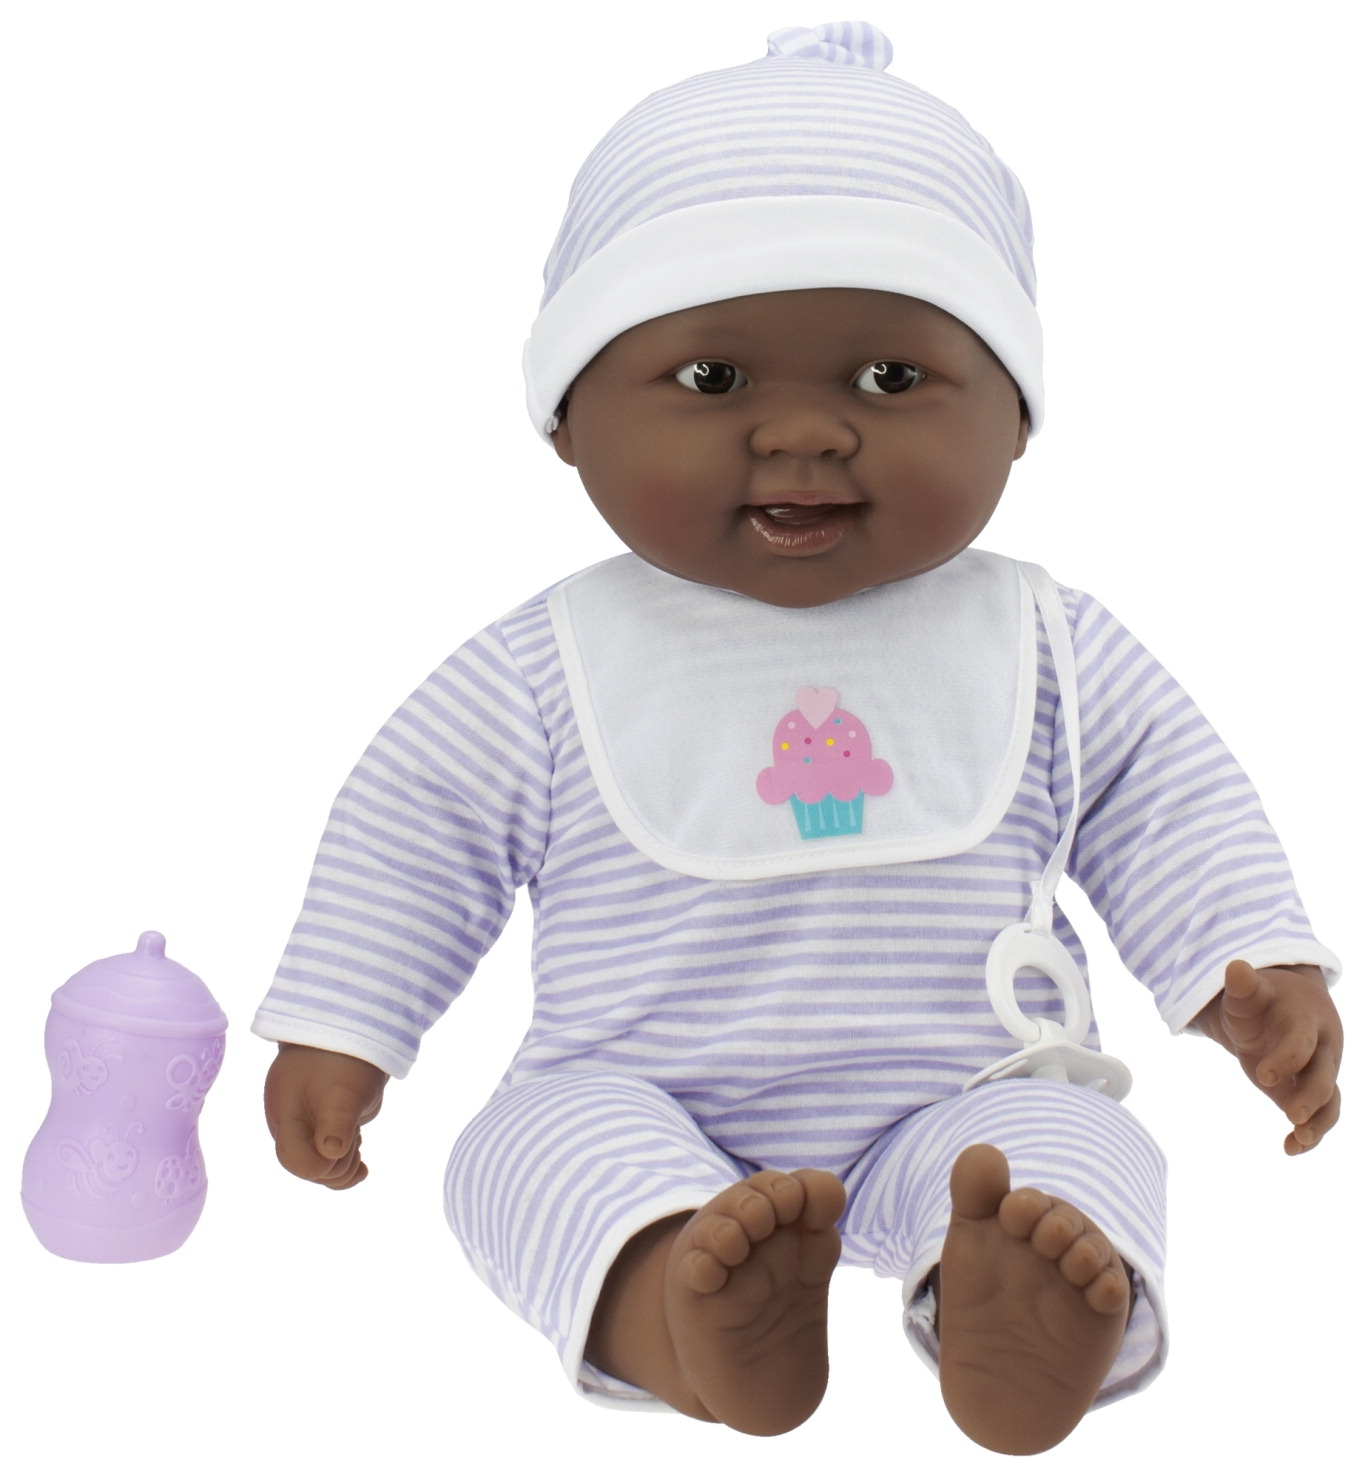 Toys Dolls Playsets & Toy Figures Doll & Action Figure Accessories - 1288980 - Lots To Cuddle Soft Body Doll; African American 1288980